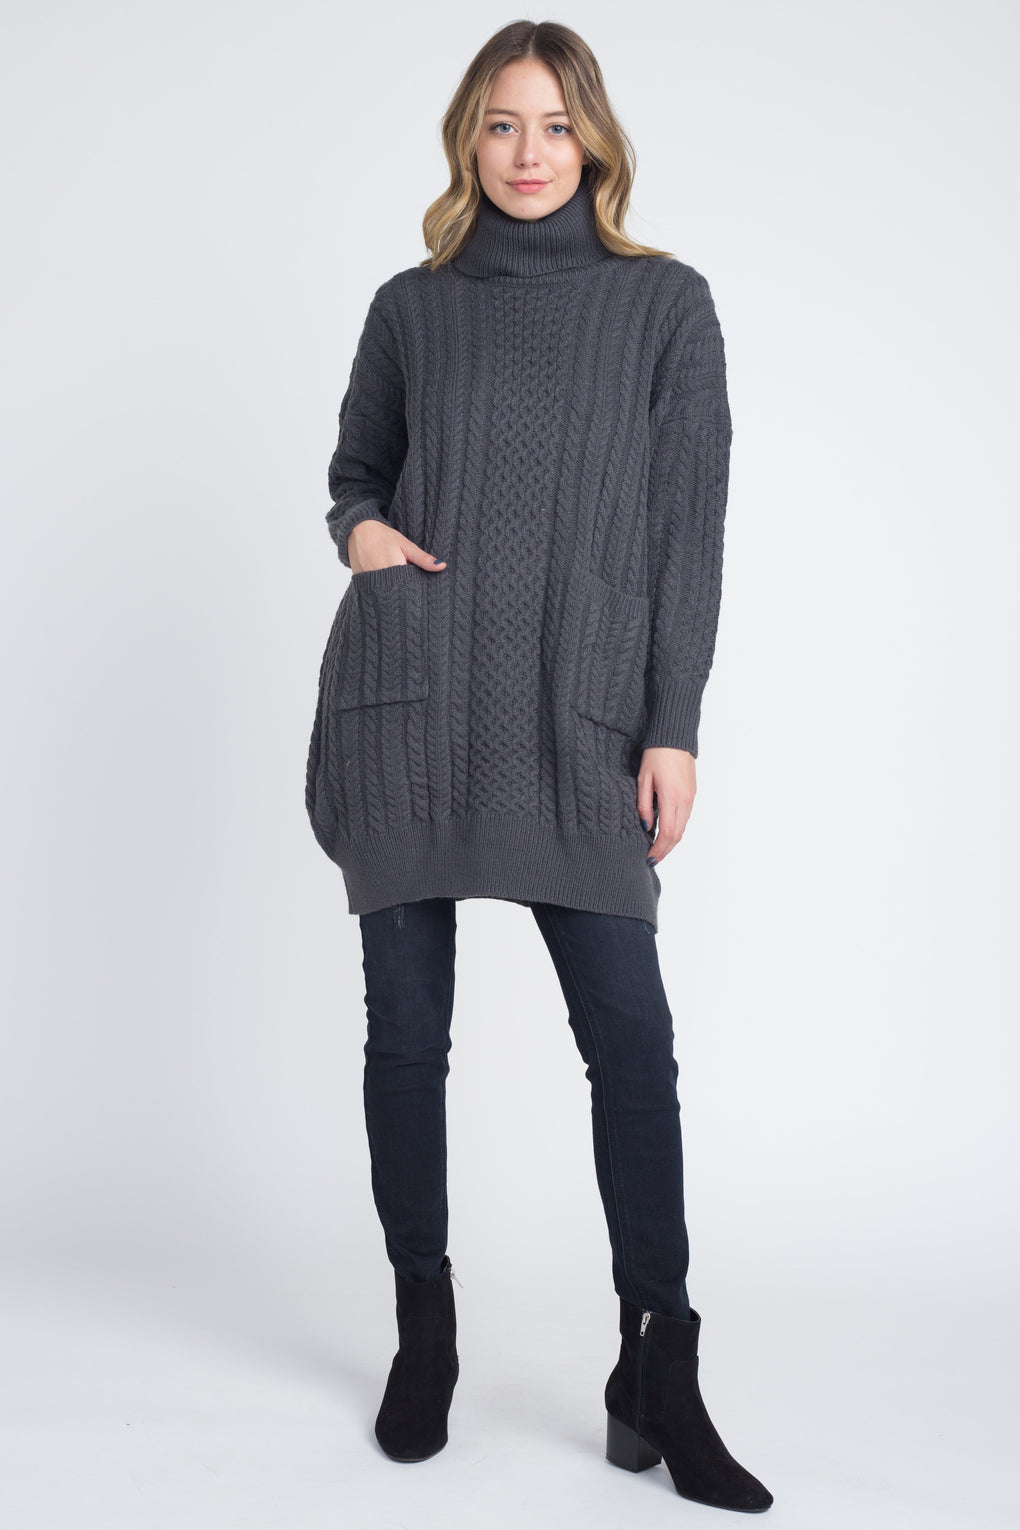 Women's Loose Fit Turtleneck Sweater - Danish Fashion & Living Online Store SALE